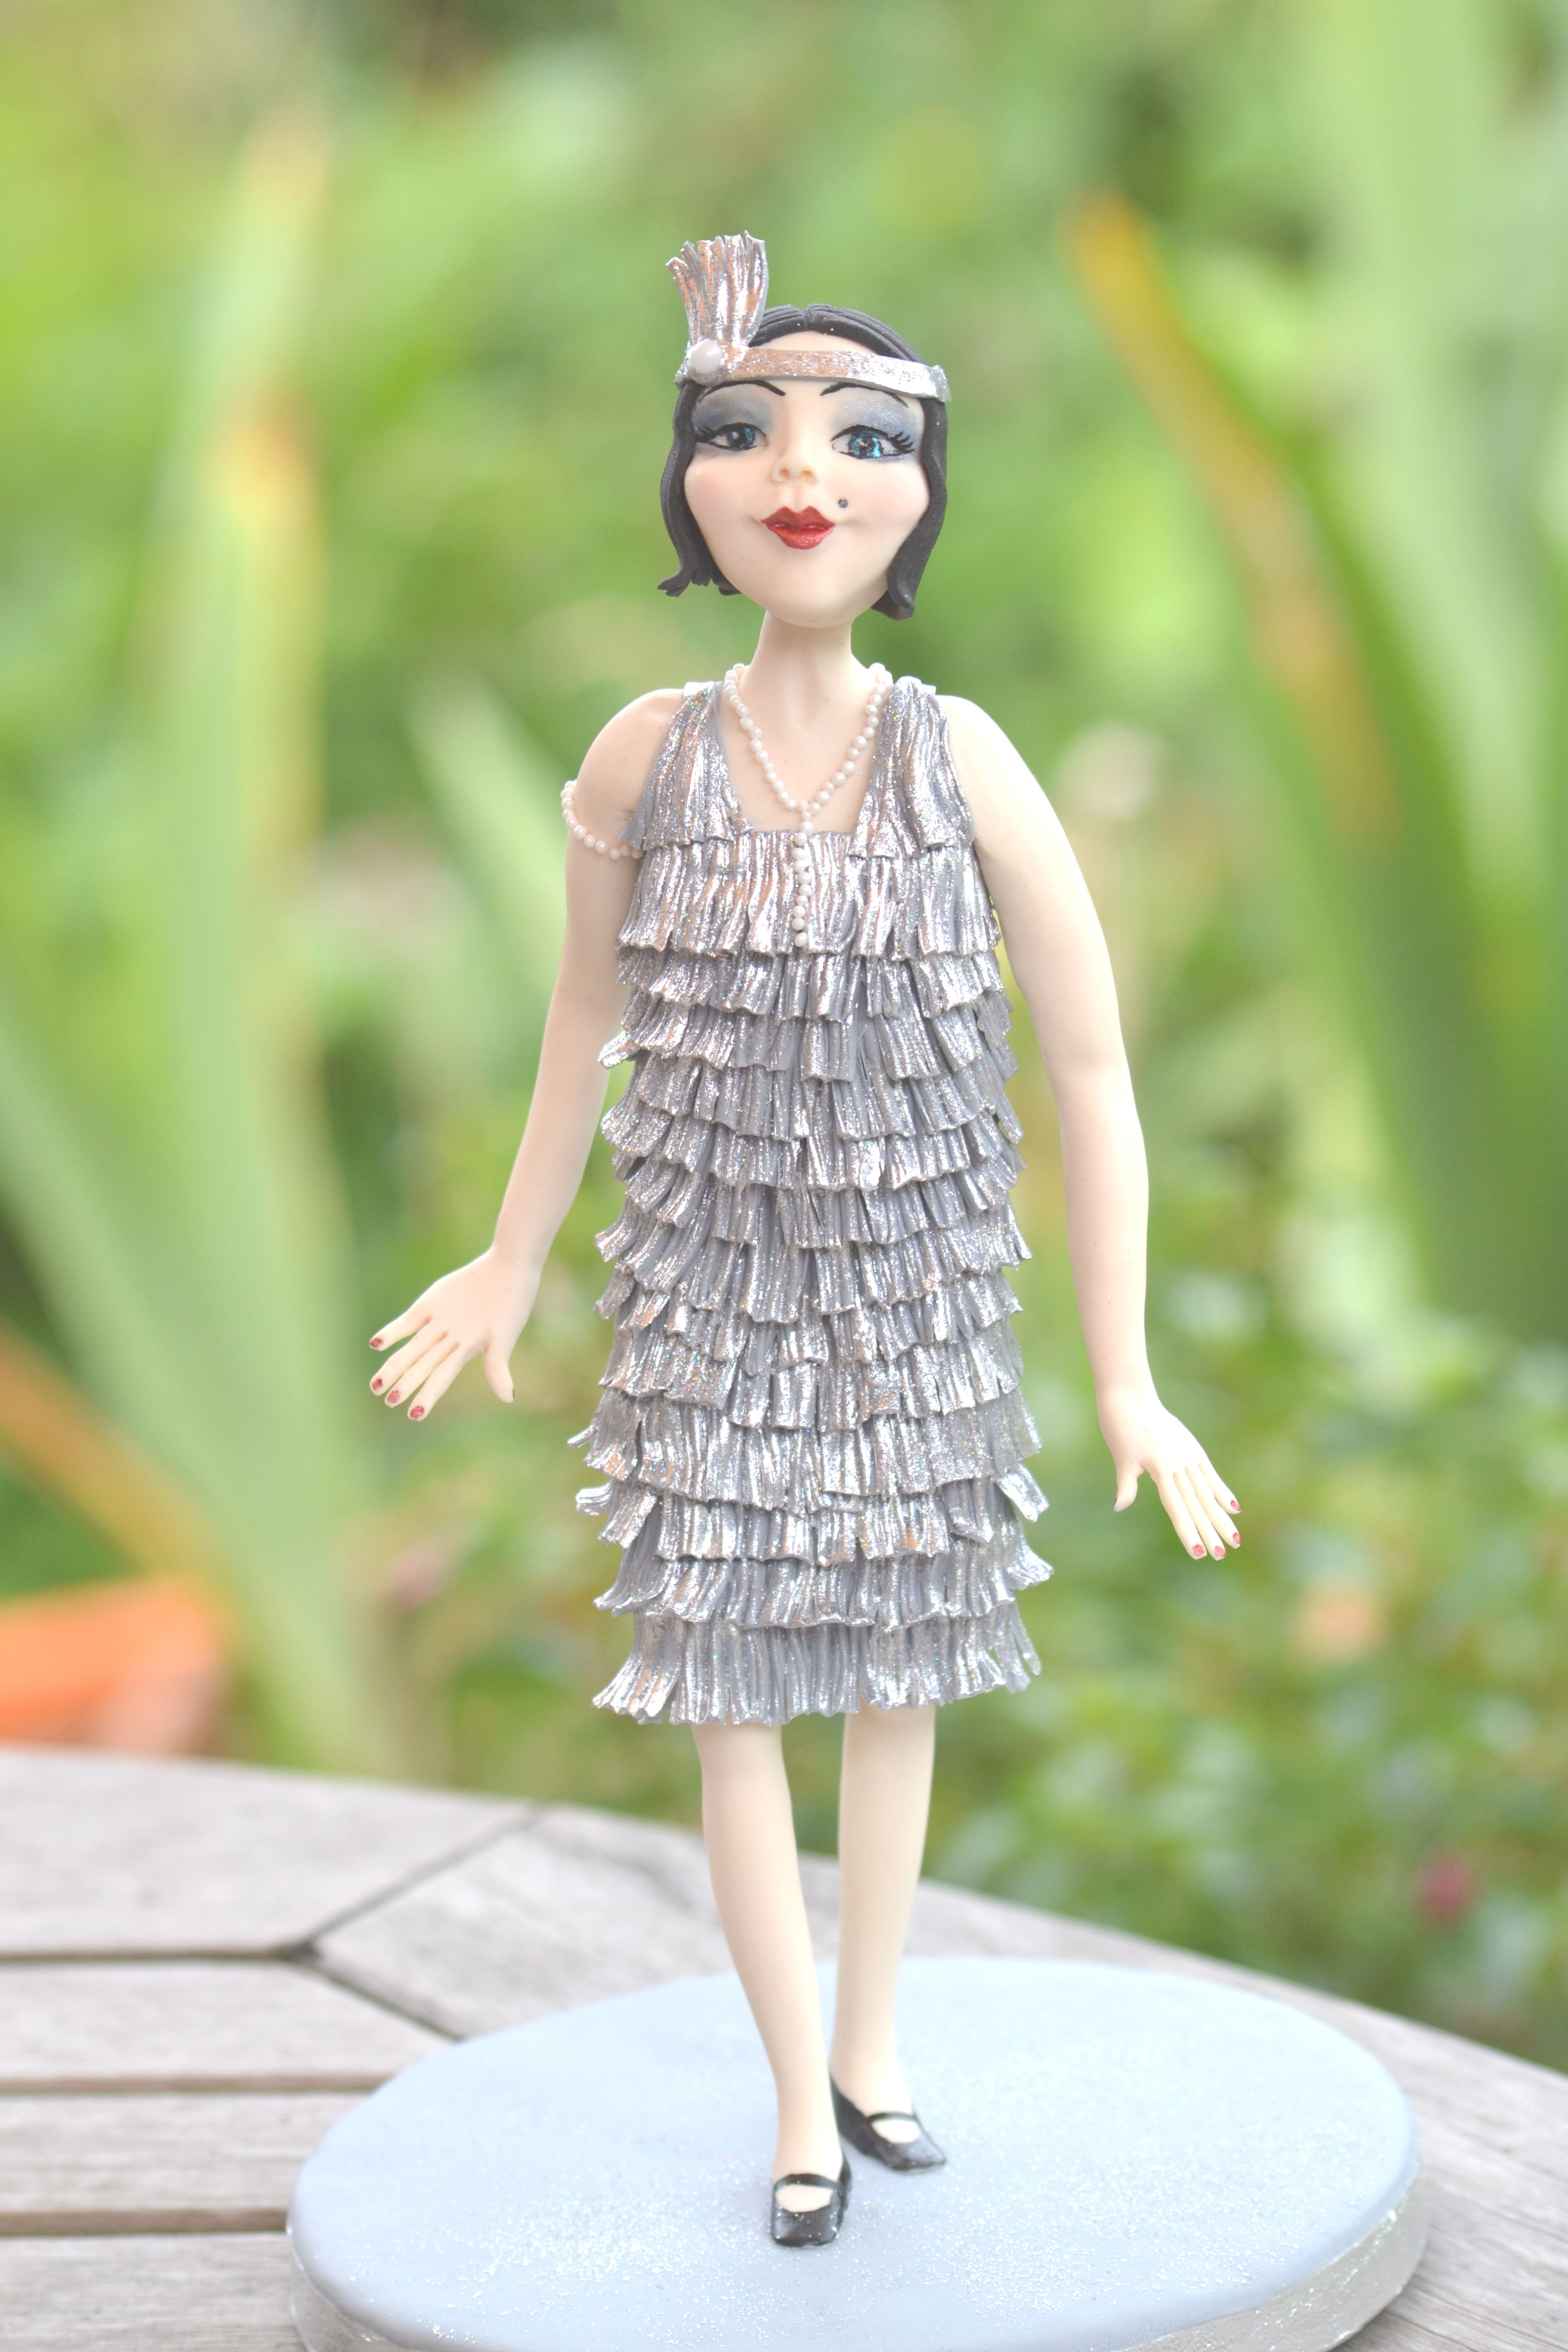 Flapper Girl Sugar Modelling Tutorial